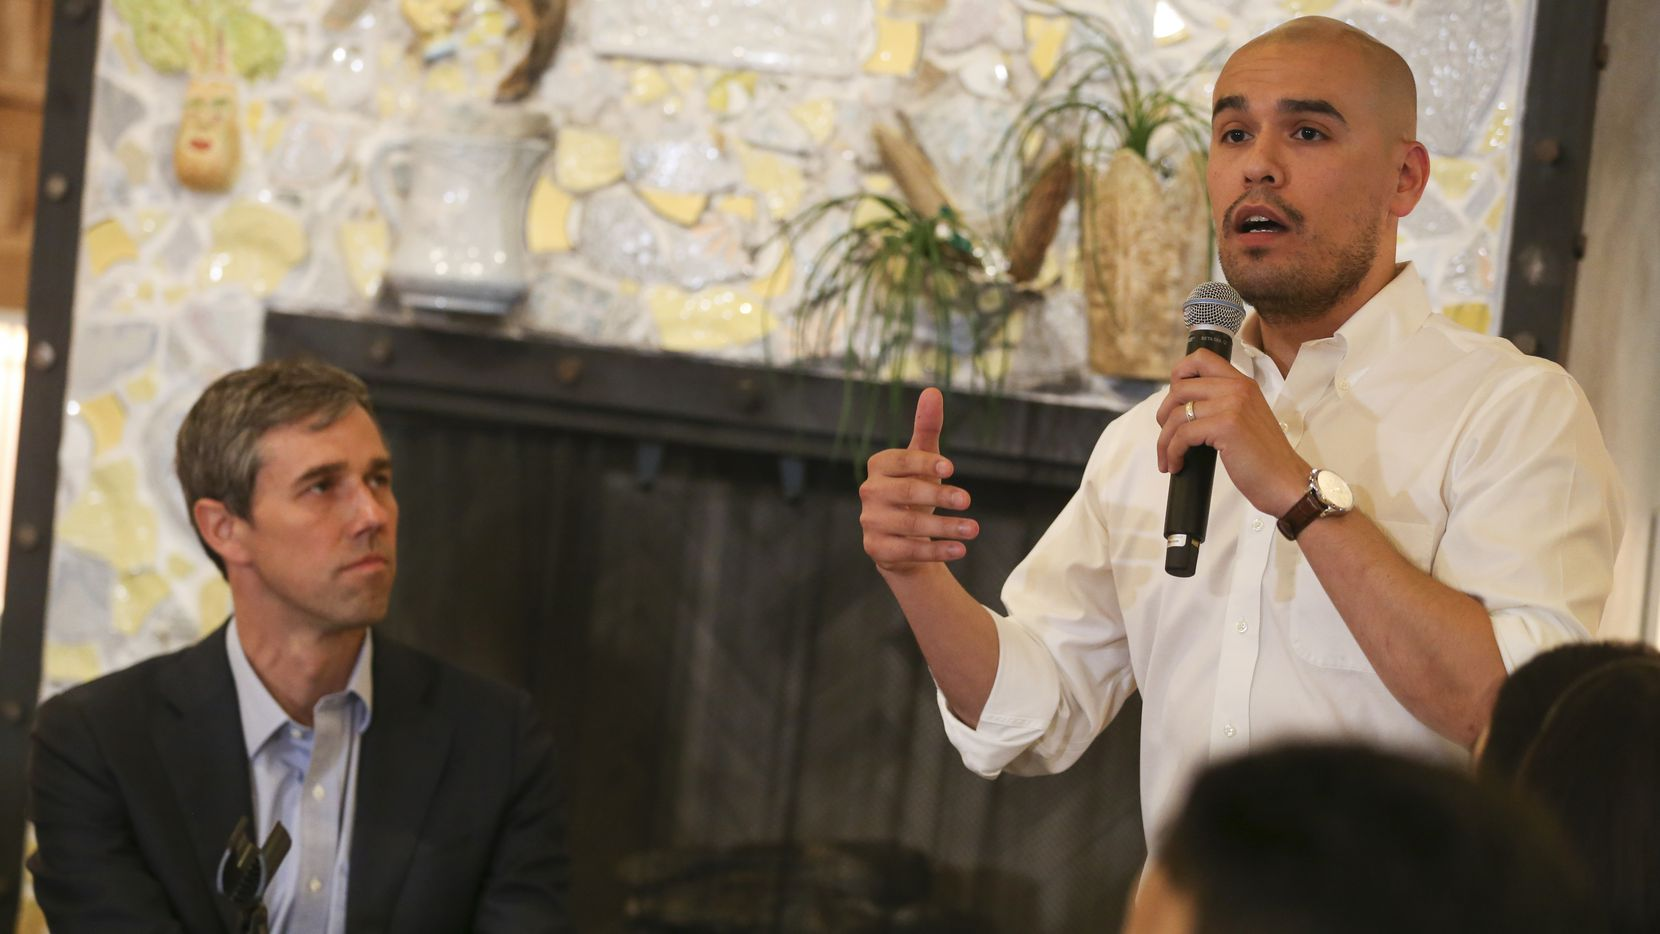 DISD Trustee Miguel Solis introduces presidential candidate Beto O'Rourke speaks during a round table event at Casa Komali restaurant on Thursday, May 30, 2019 in Dallas. (Ryan Michalesko/The Dallas Morning News)